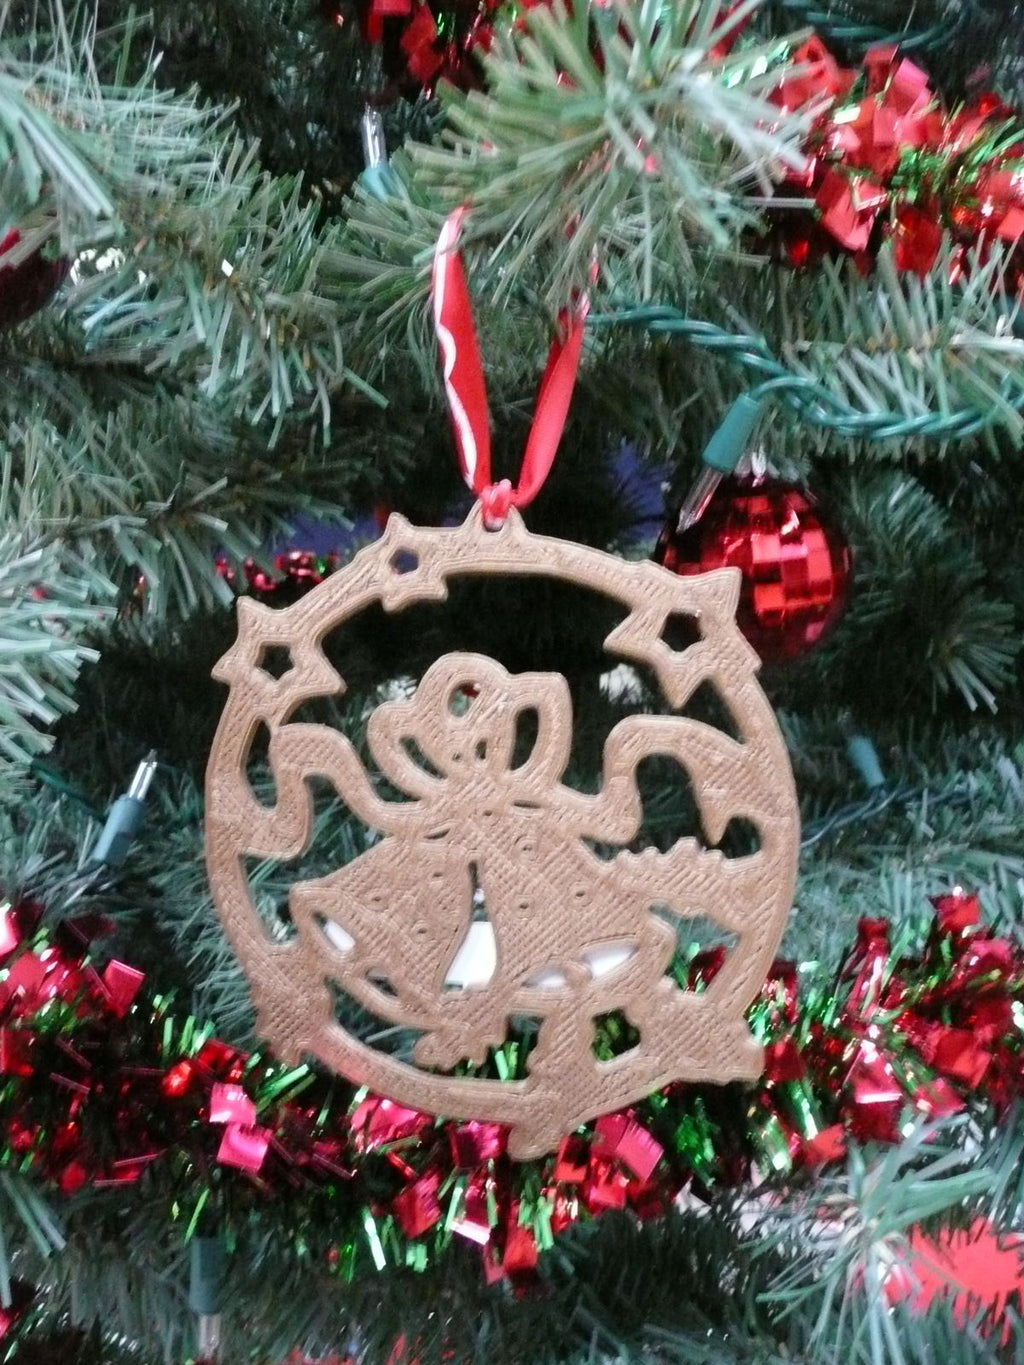 Bells Merry Christmas Tree Hanging Ornament Holiday Ornaments 3D Printed PR152-2